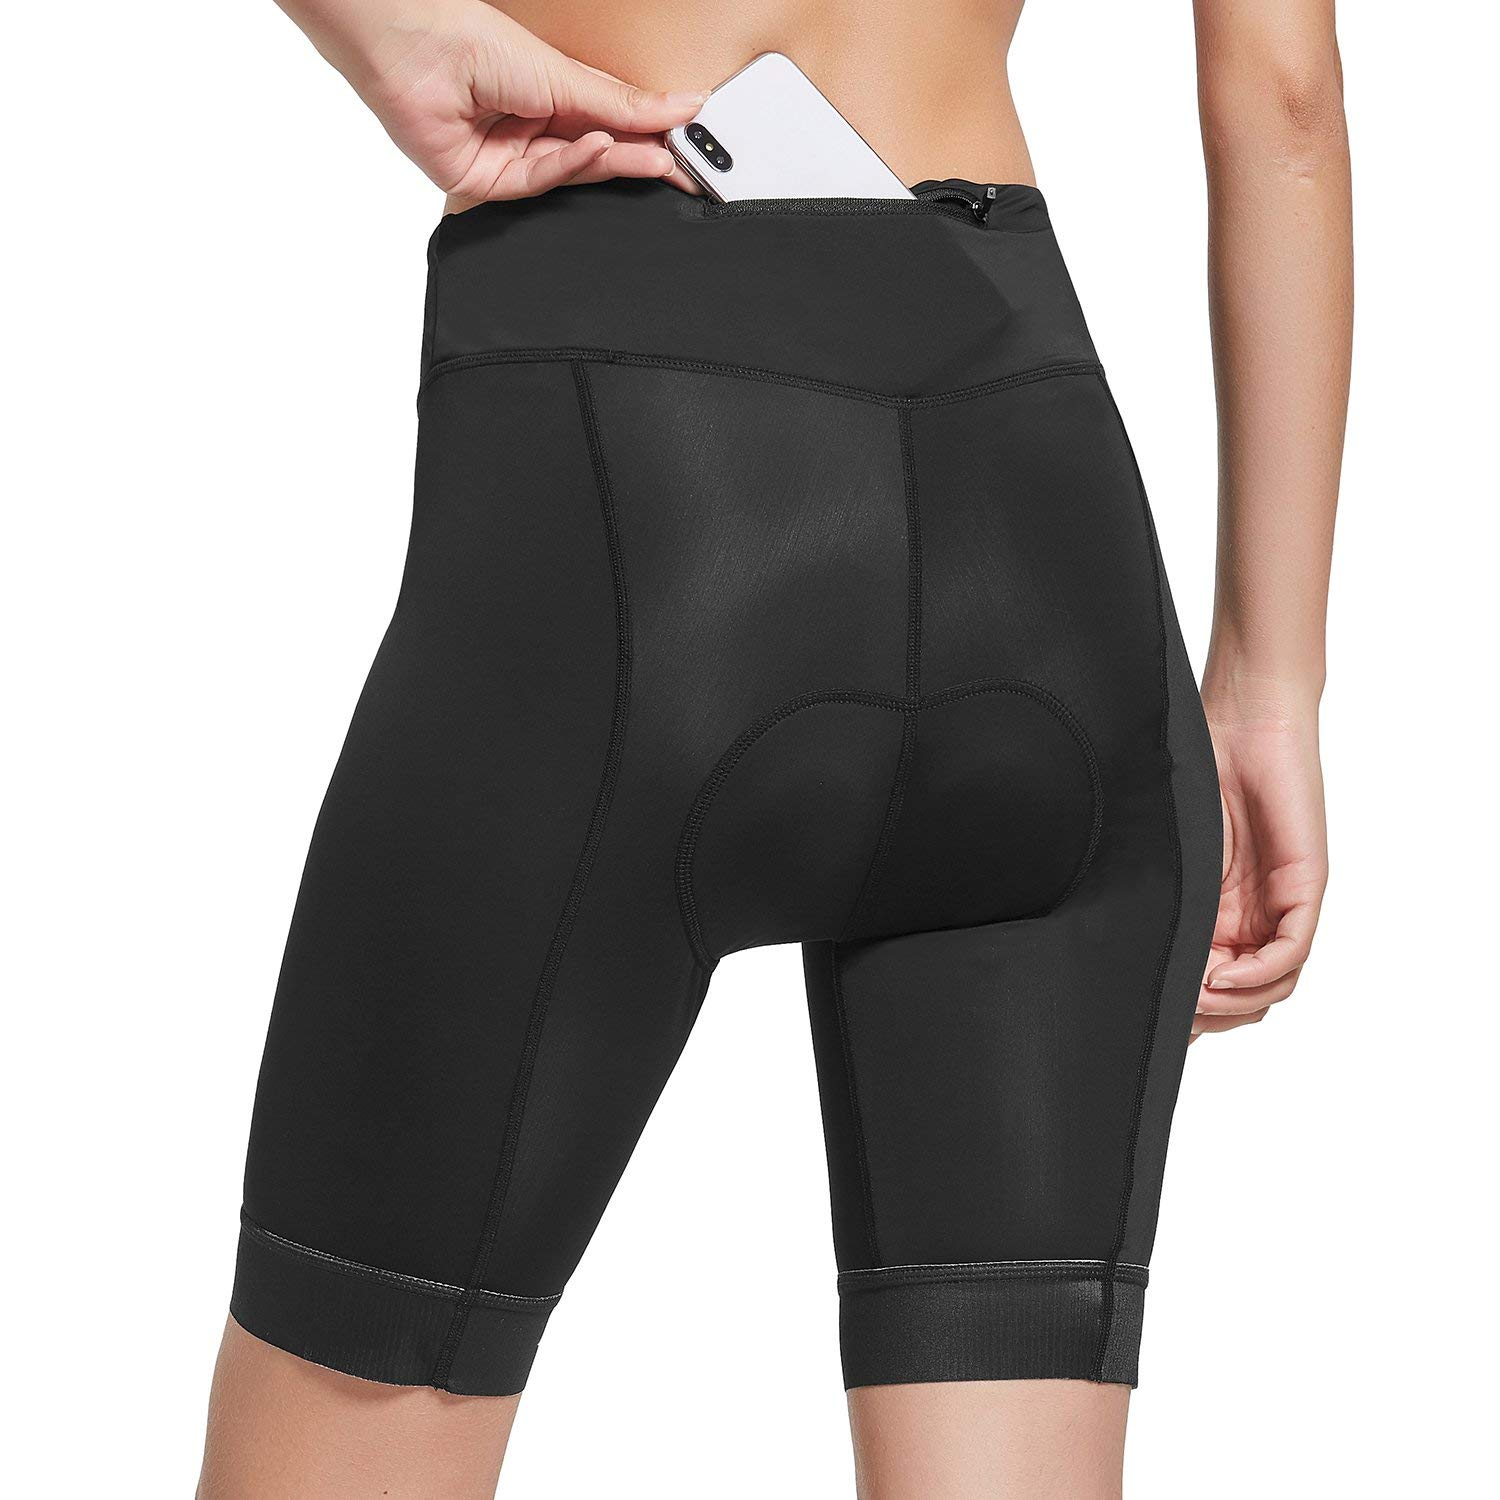 Baleaf Womens Cycling Shorts with 3D Padded Bike Shorts with Zipper Pocket UPF 50+ Black by Baleaf